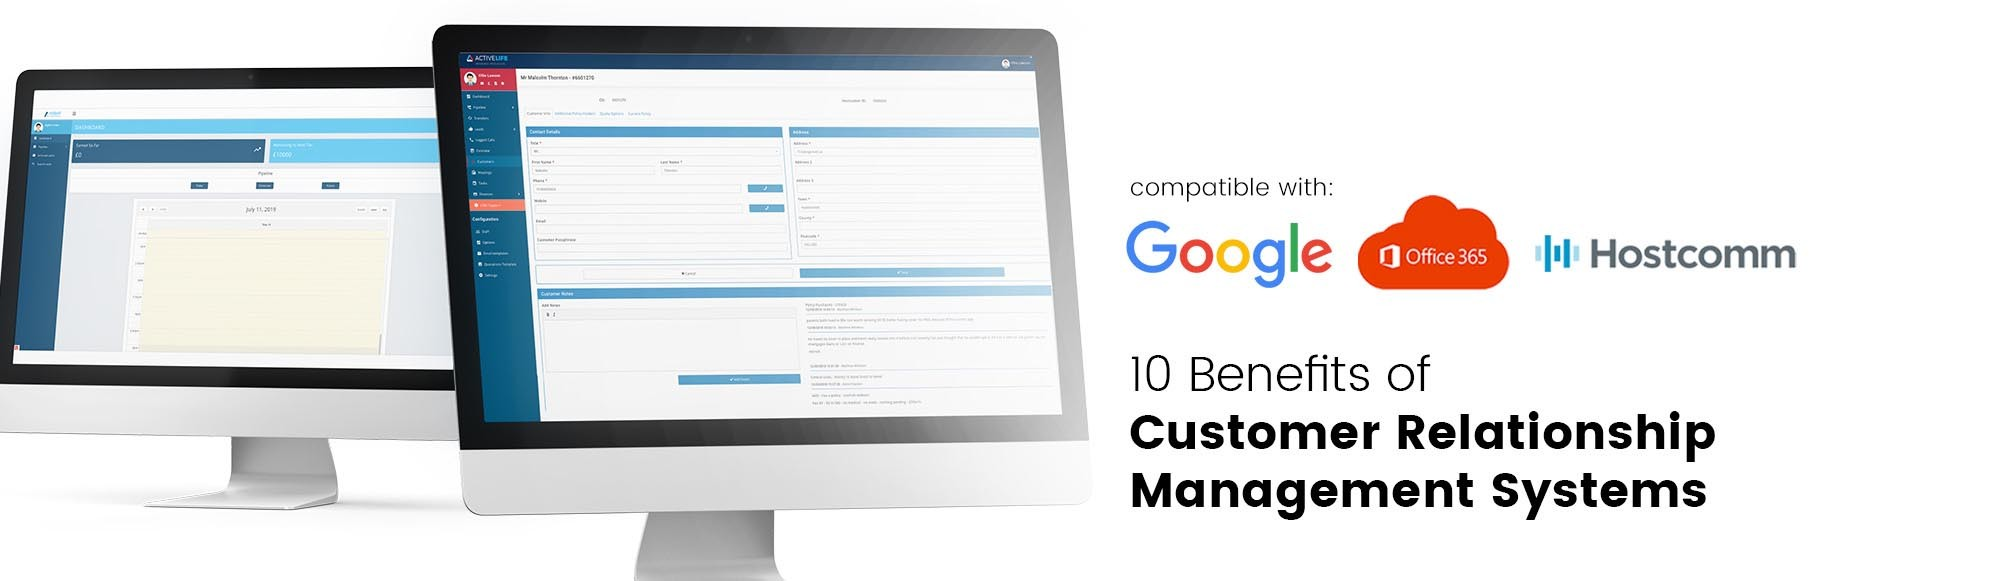 Benefits of Customer Relationship Management Systems